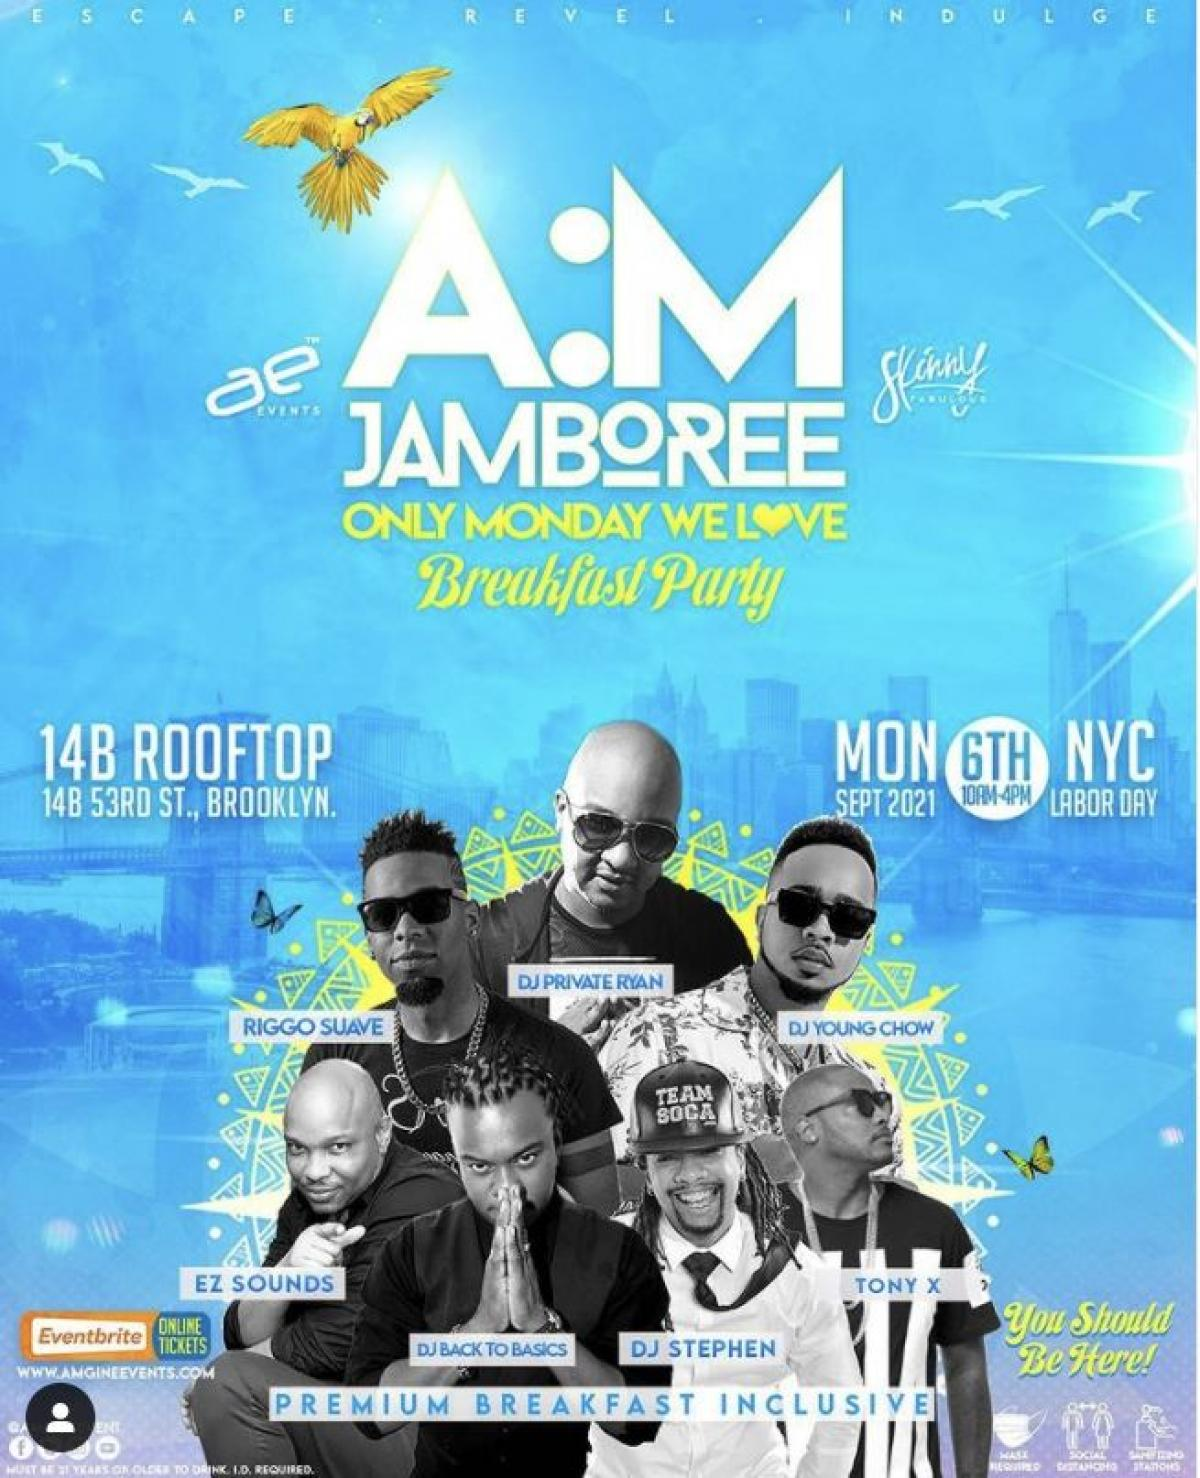 A:M Jamboree NYC flyer or graphic.